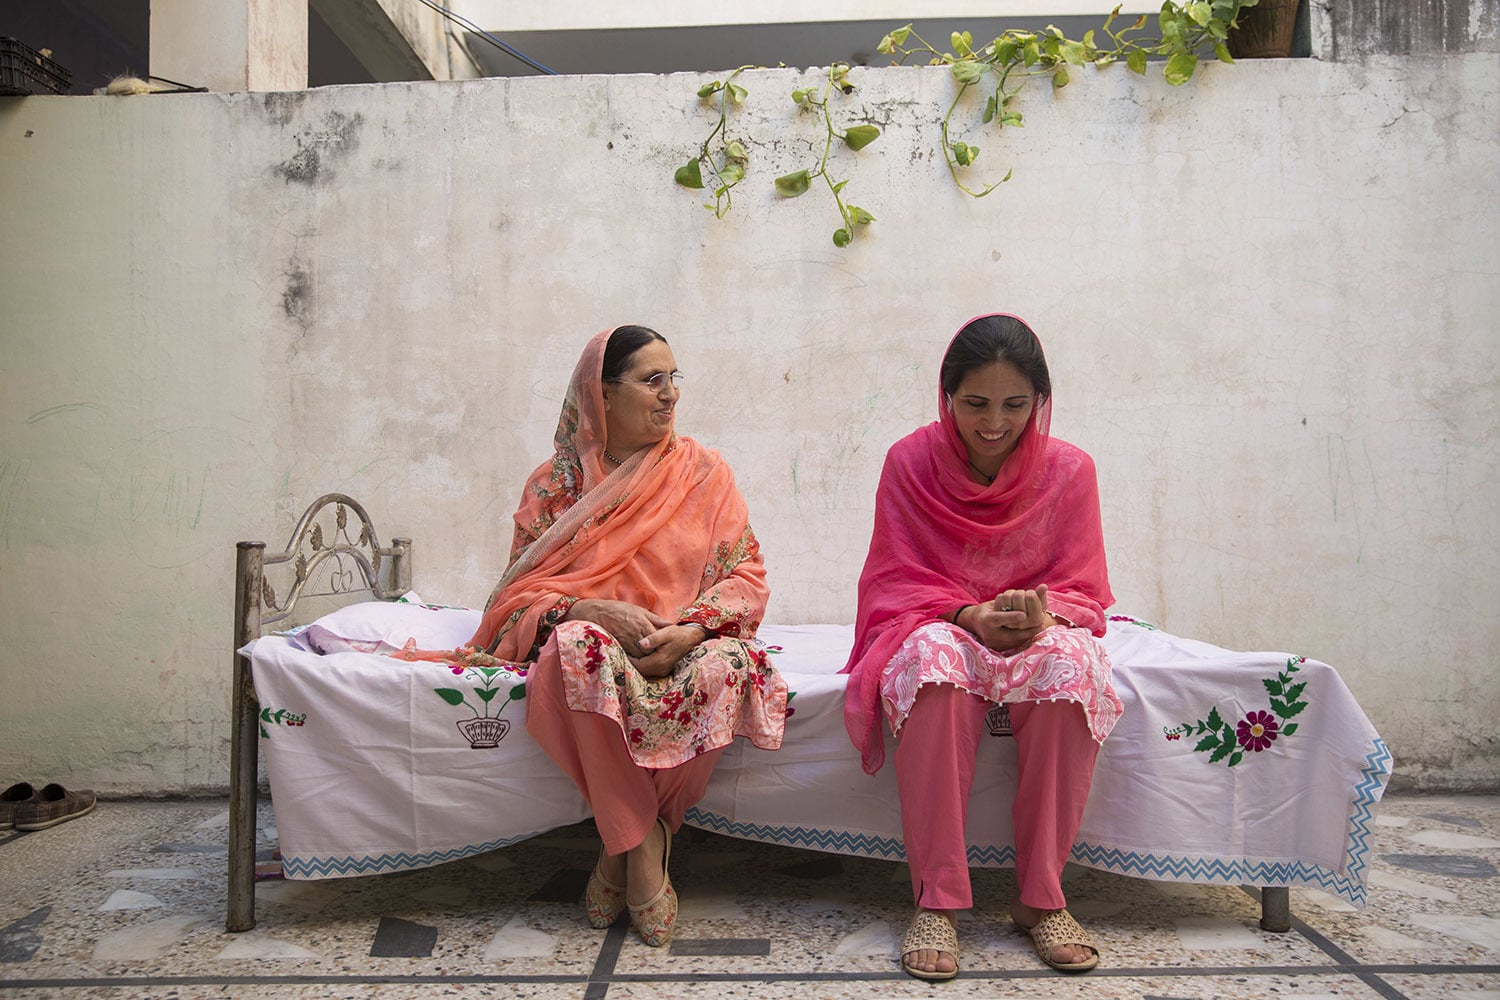 Nusrat Bibi, spends time with her mother Nurbano. Bibi and her brother are the only two members who earn an income in the family. Photograph taken on May 18, 2020 in Rawalpindi.